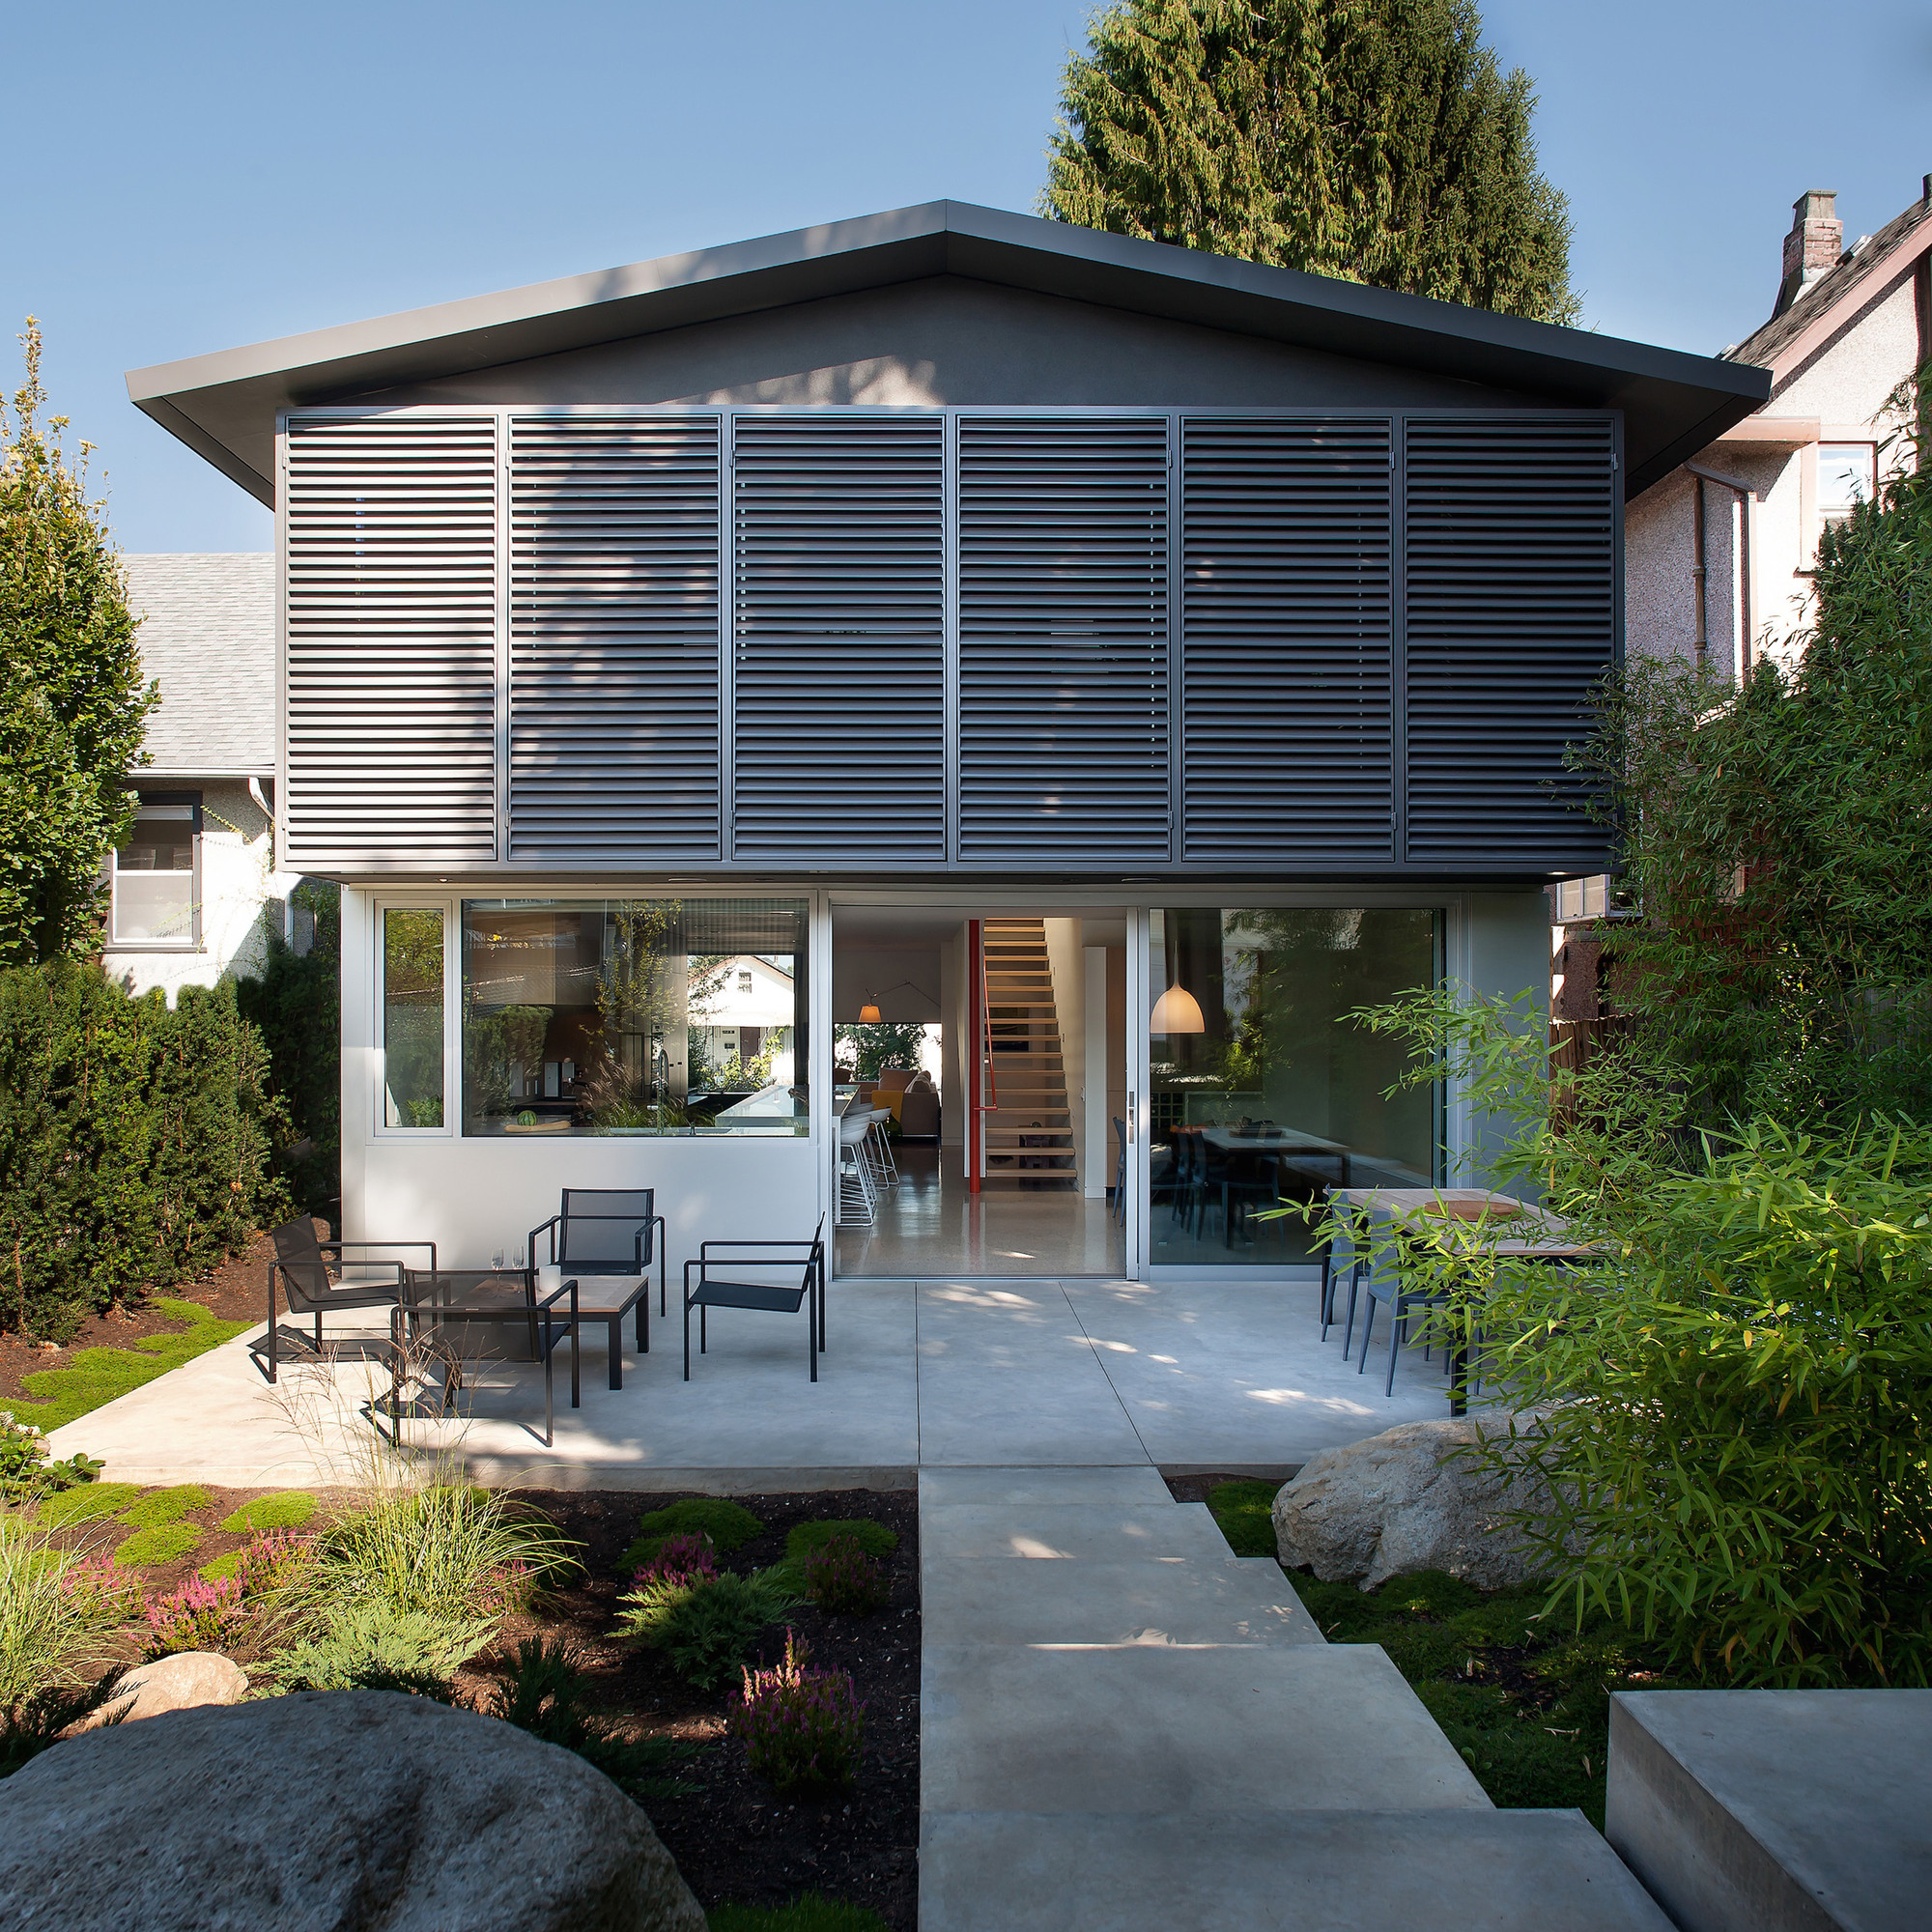 Gallery of 430 house d arcy jones architecture 7 for Jones architecture